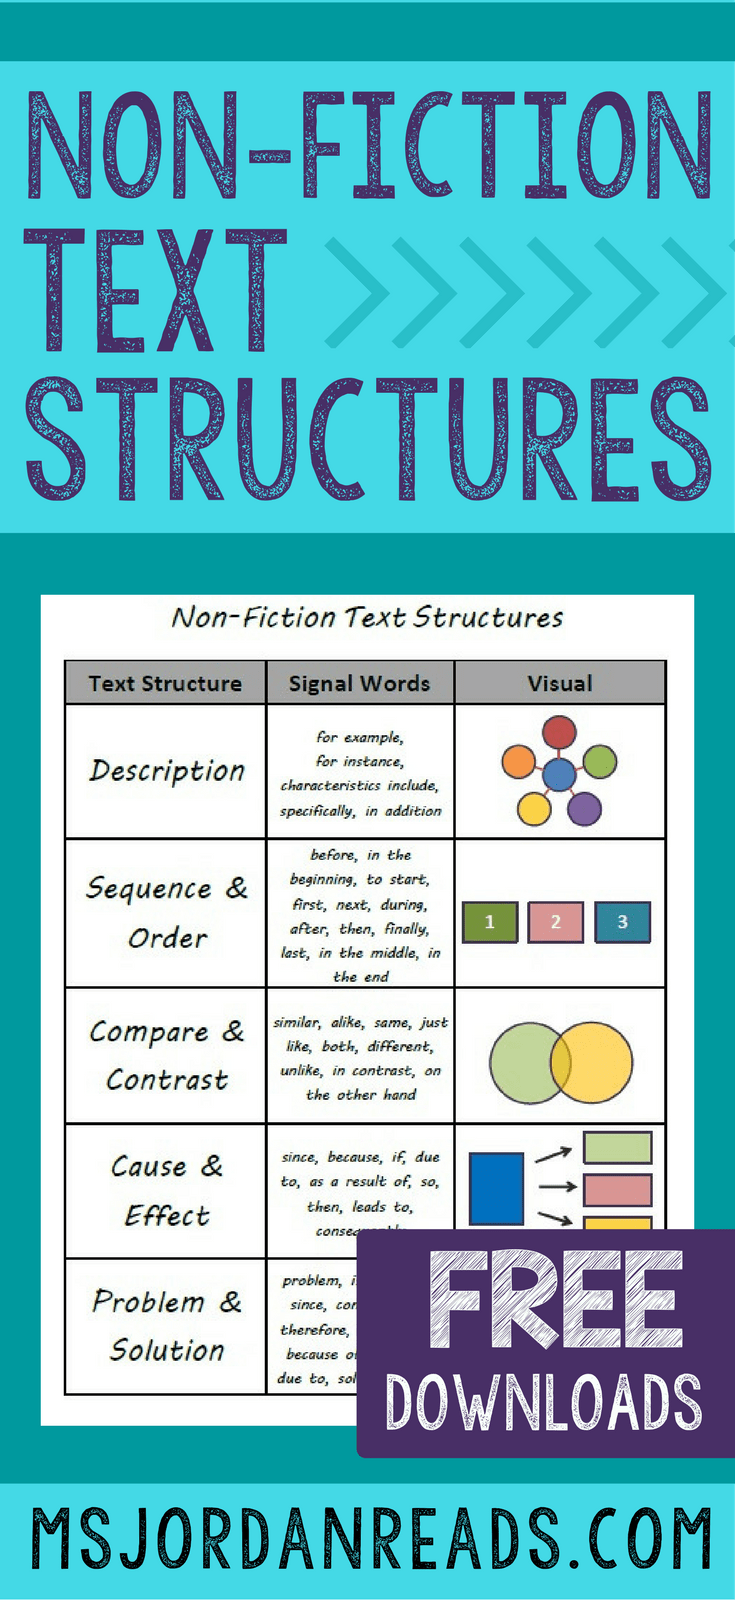 hight resolution of Non-Fiction Text Structures - MsJordanReads